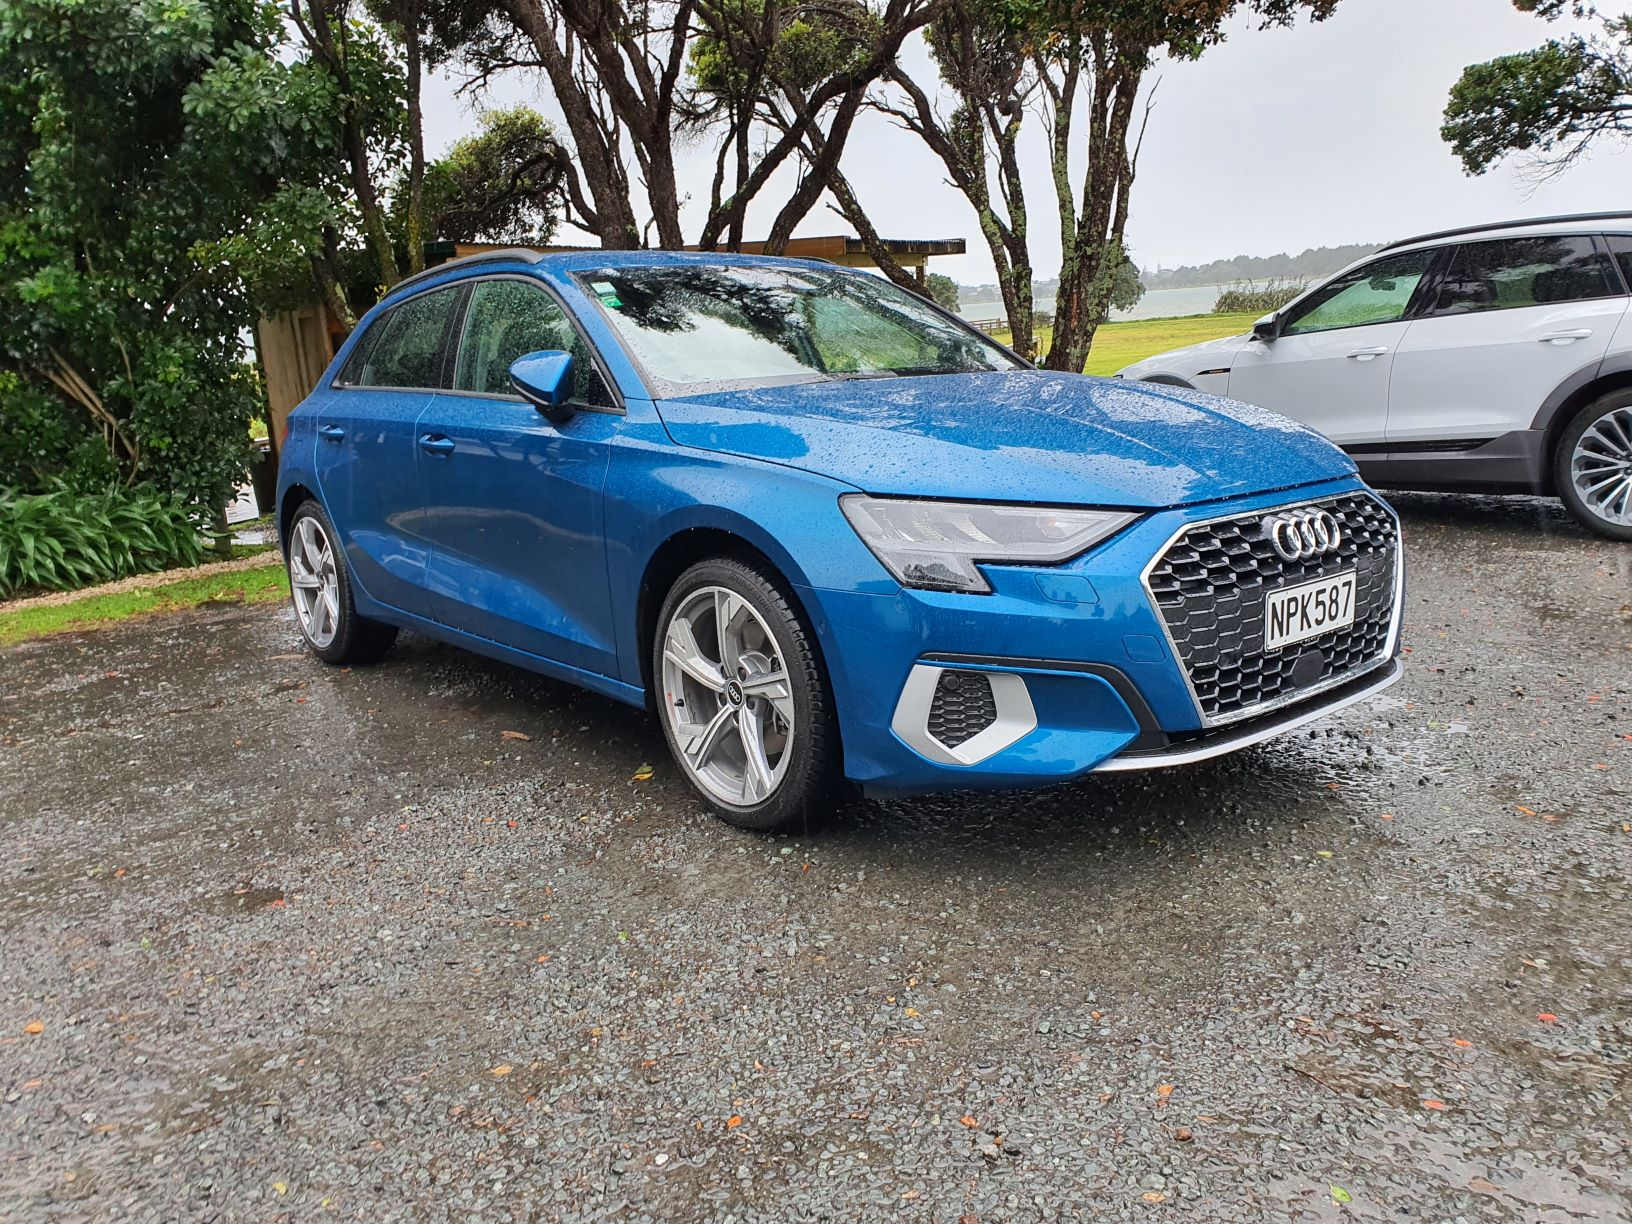 Front view of the 4th generation Audi A3 in Atoll Blue